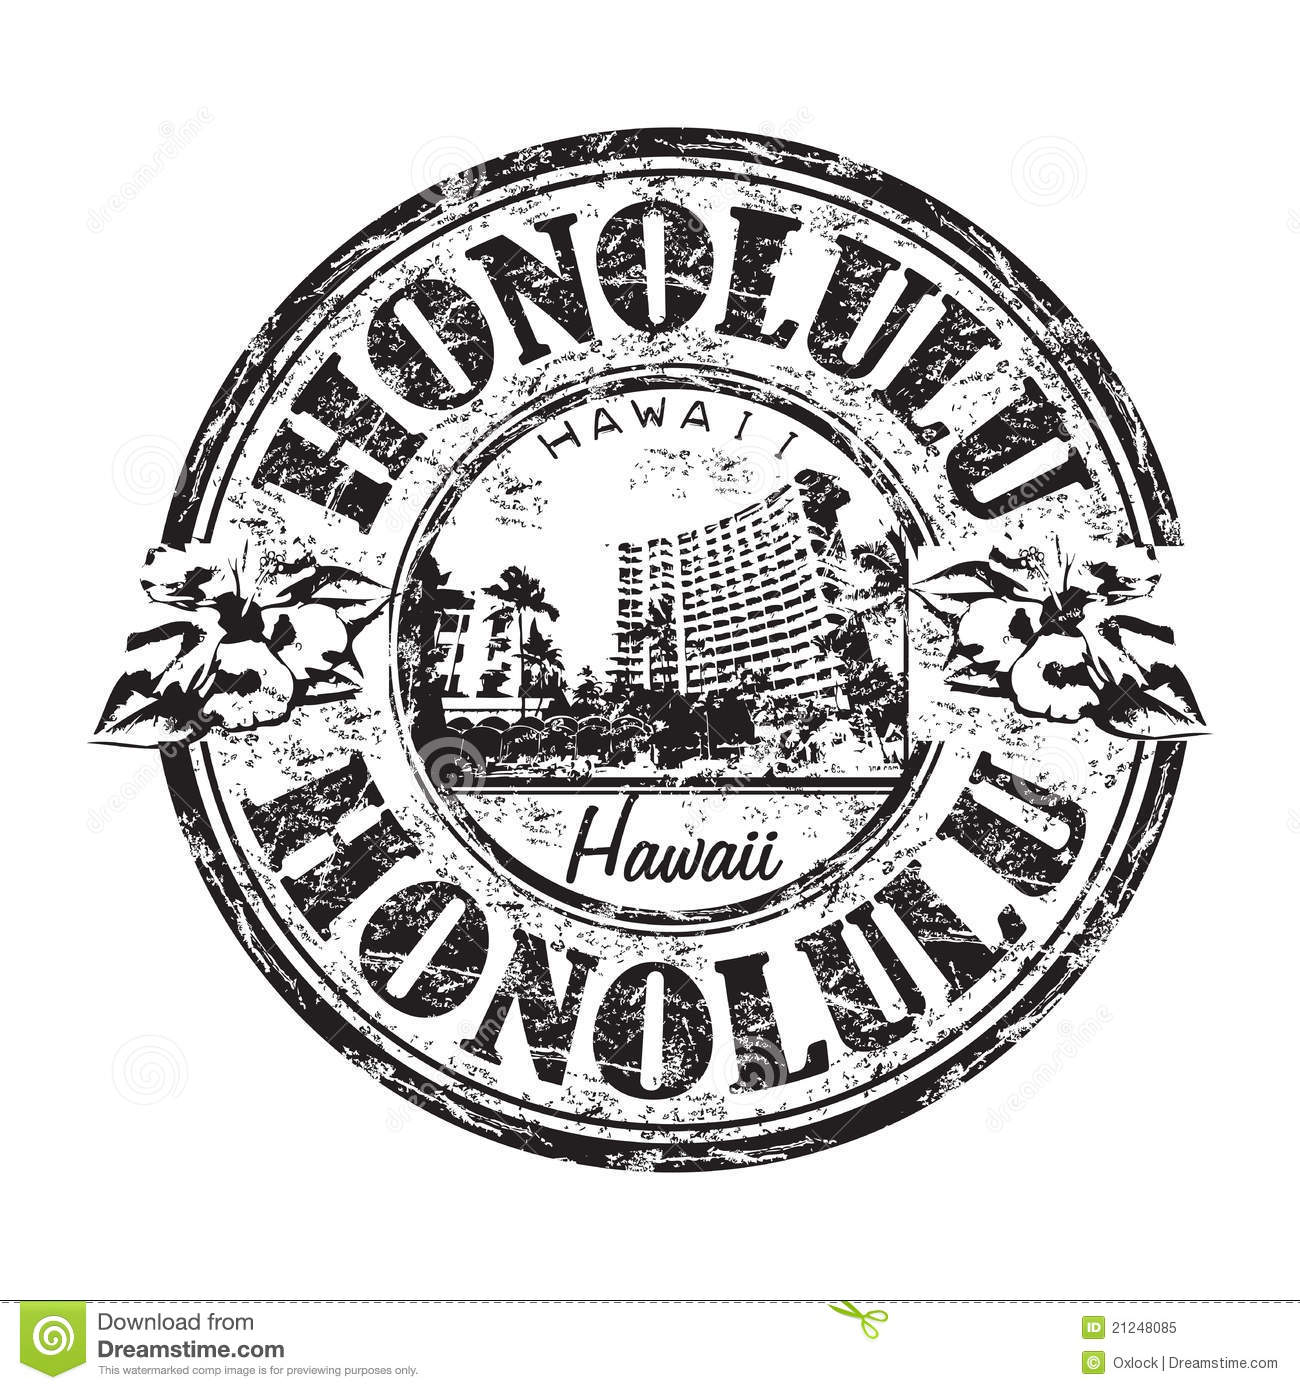 Honolulu Grunge Rubber Stamp Royalty Free Stock Photo.